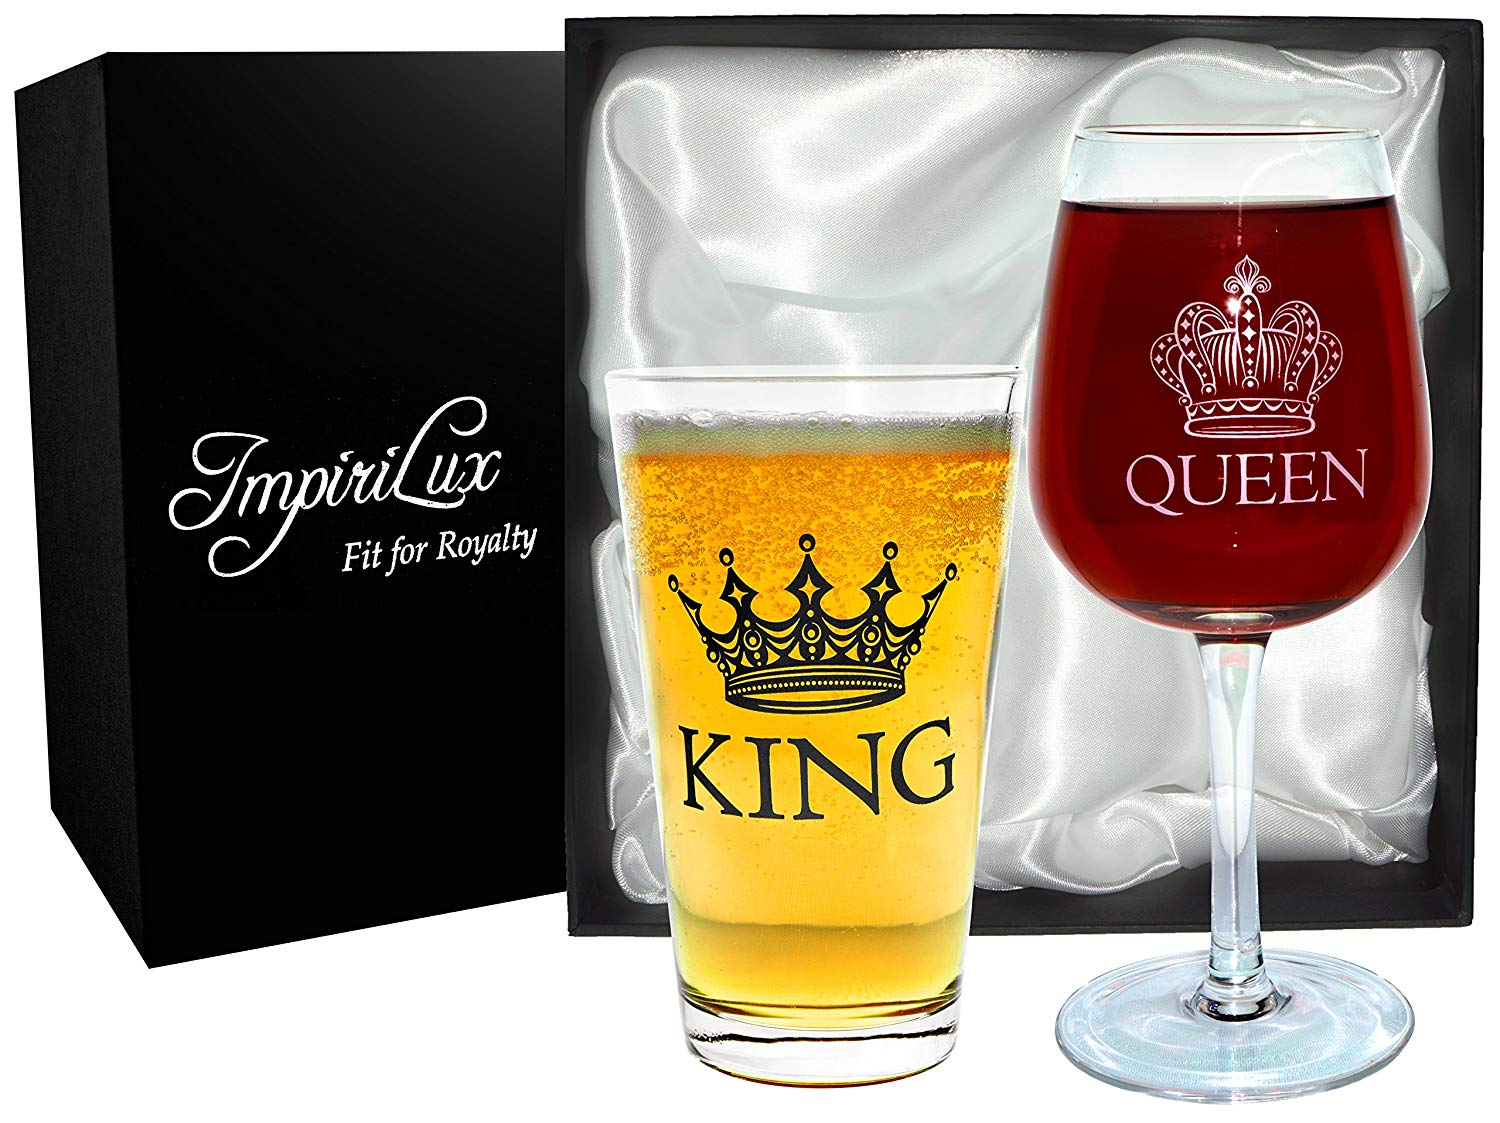 impirilux king beer queen wine glass set beautiful affordable gift for newlyweds engagements anniversaries weddings parents couples christmas - Christmas Gifts For Newlyweds